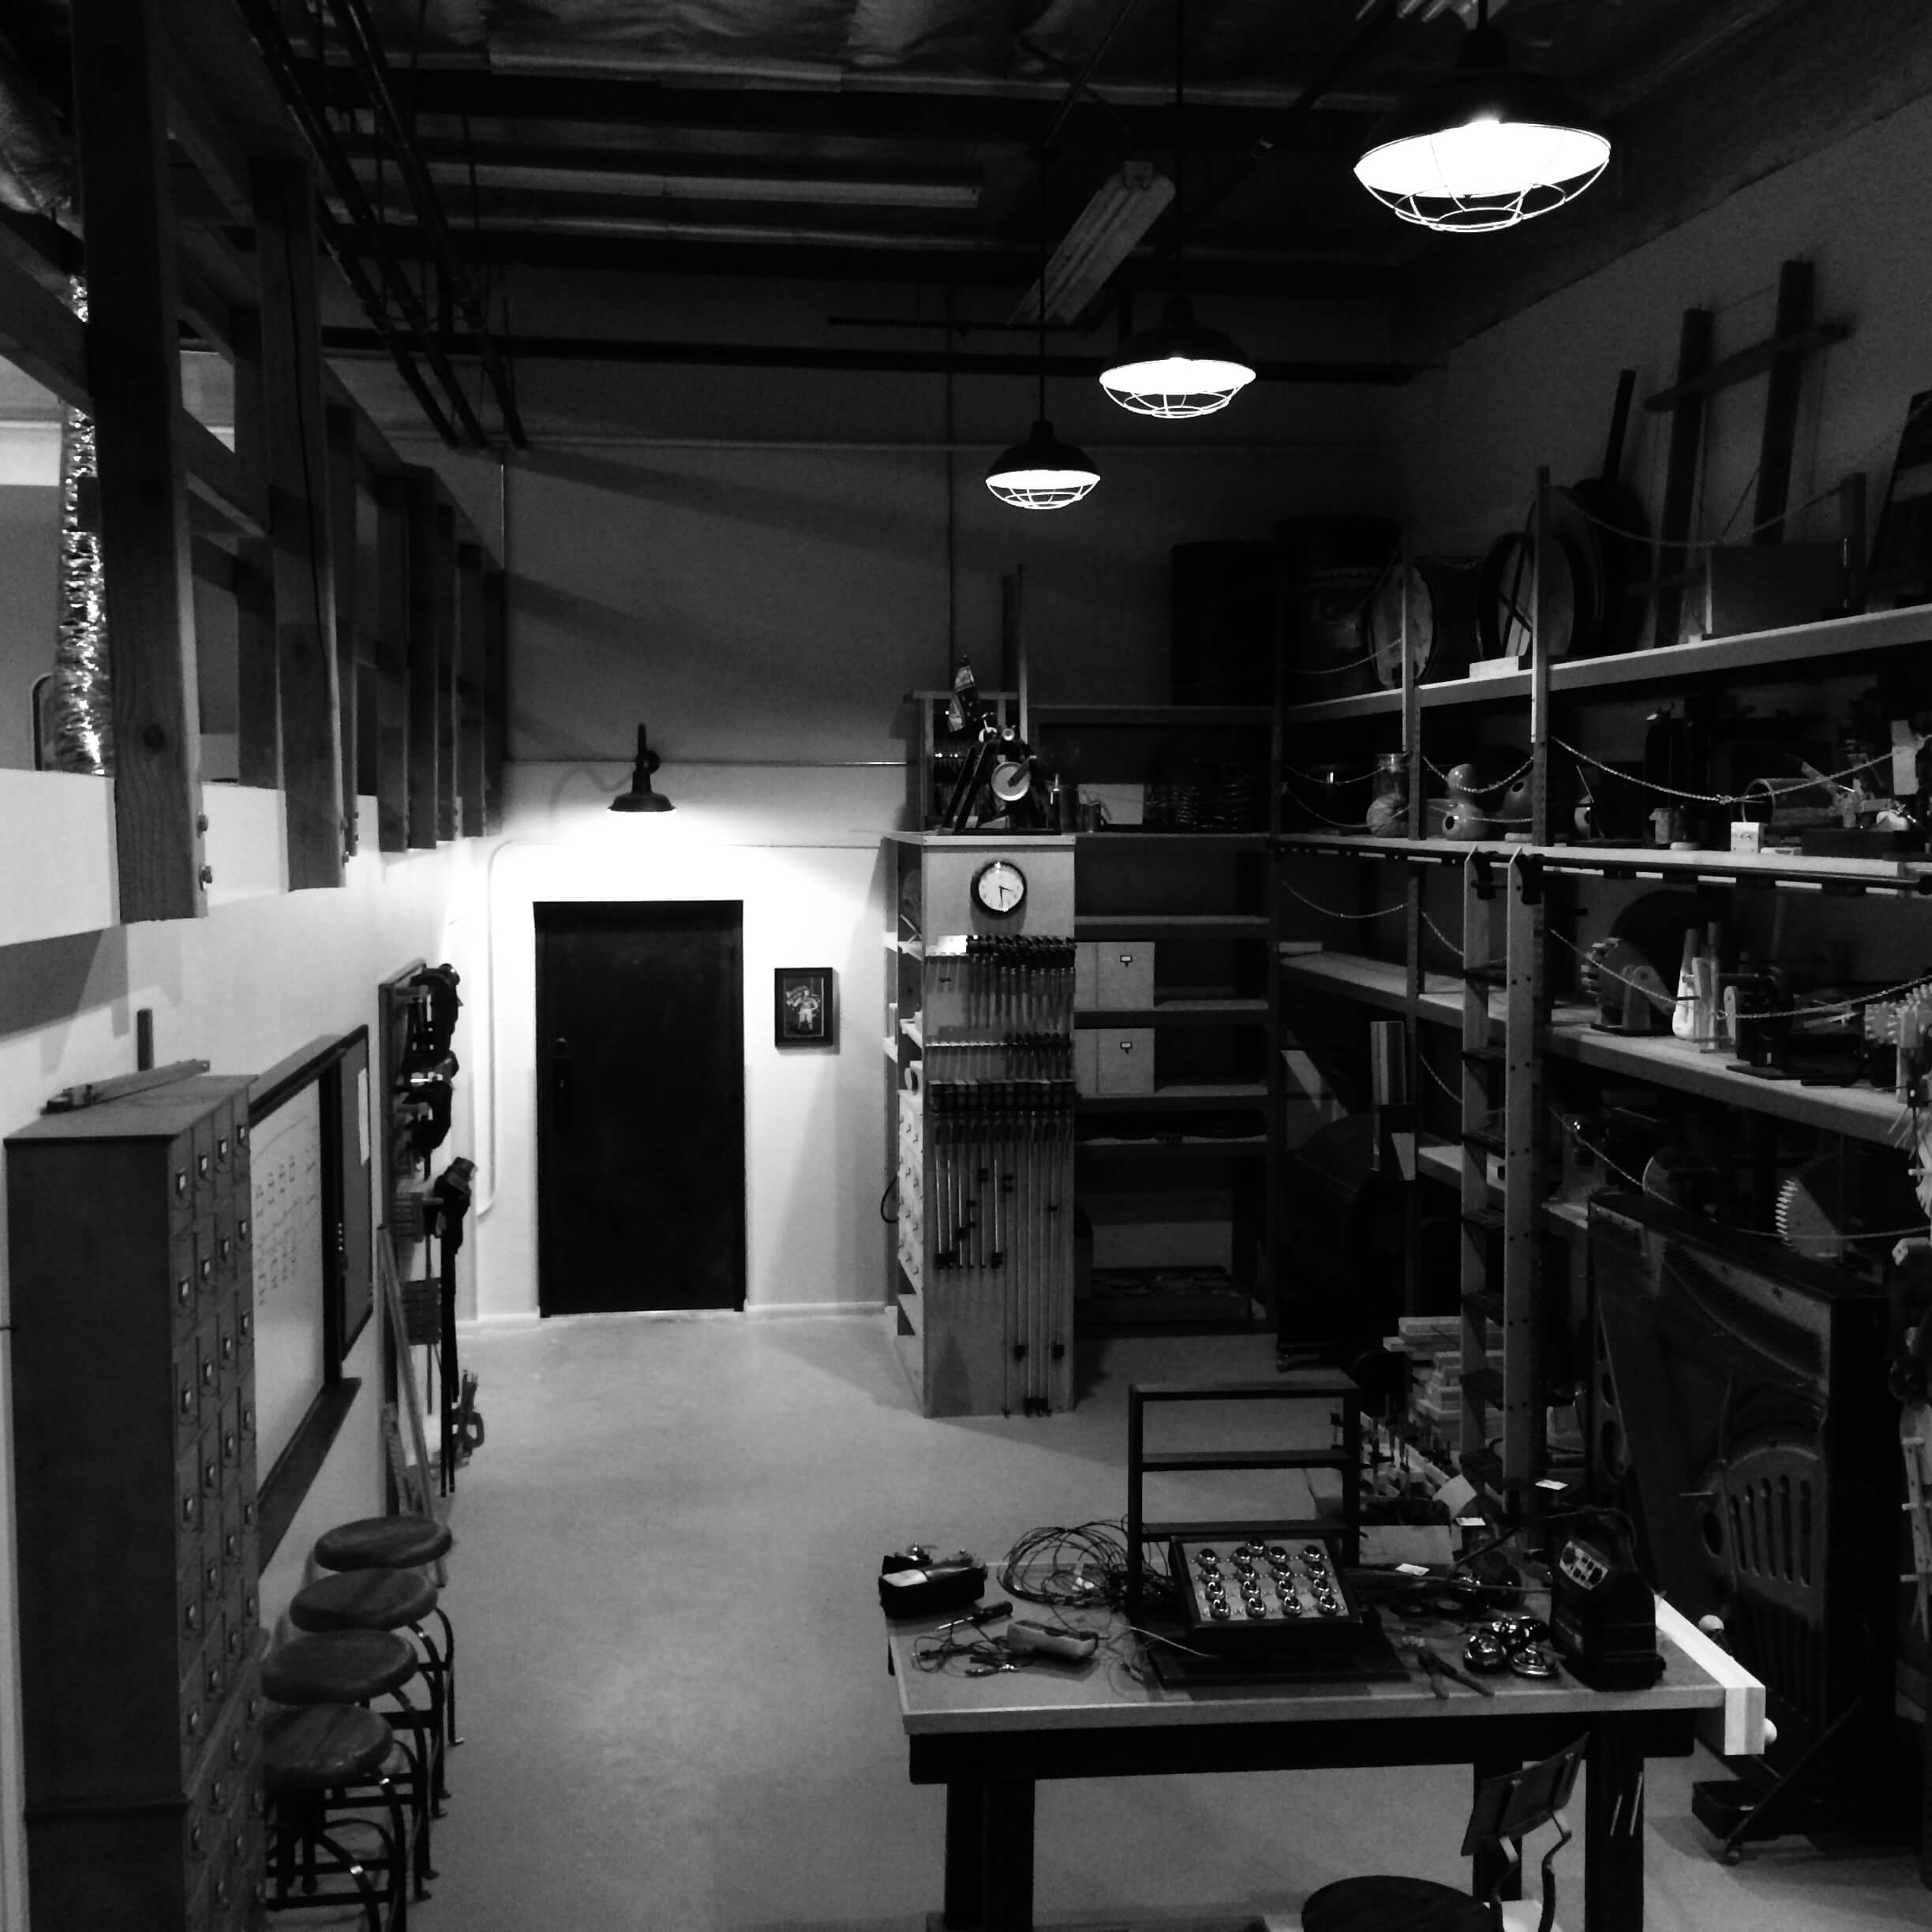 SSI Shop image in black and white